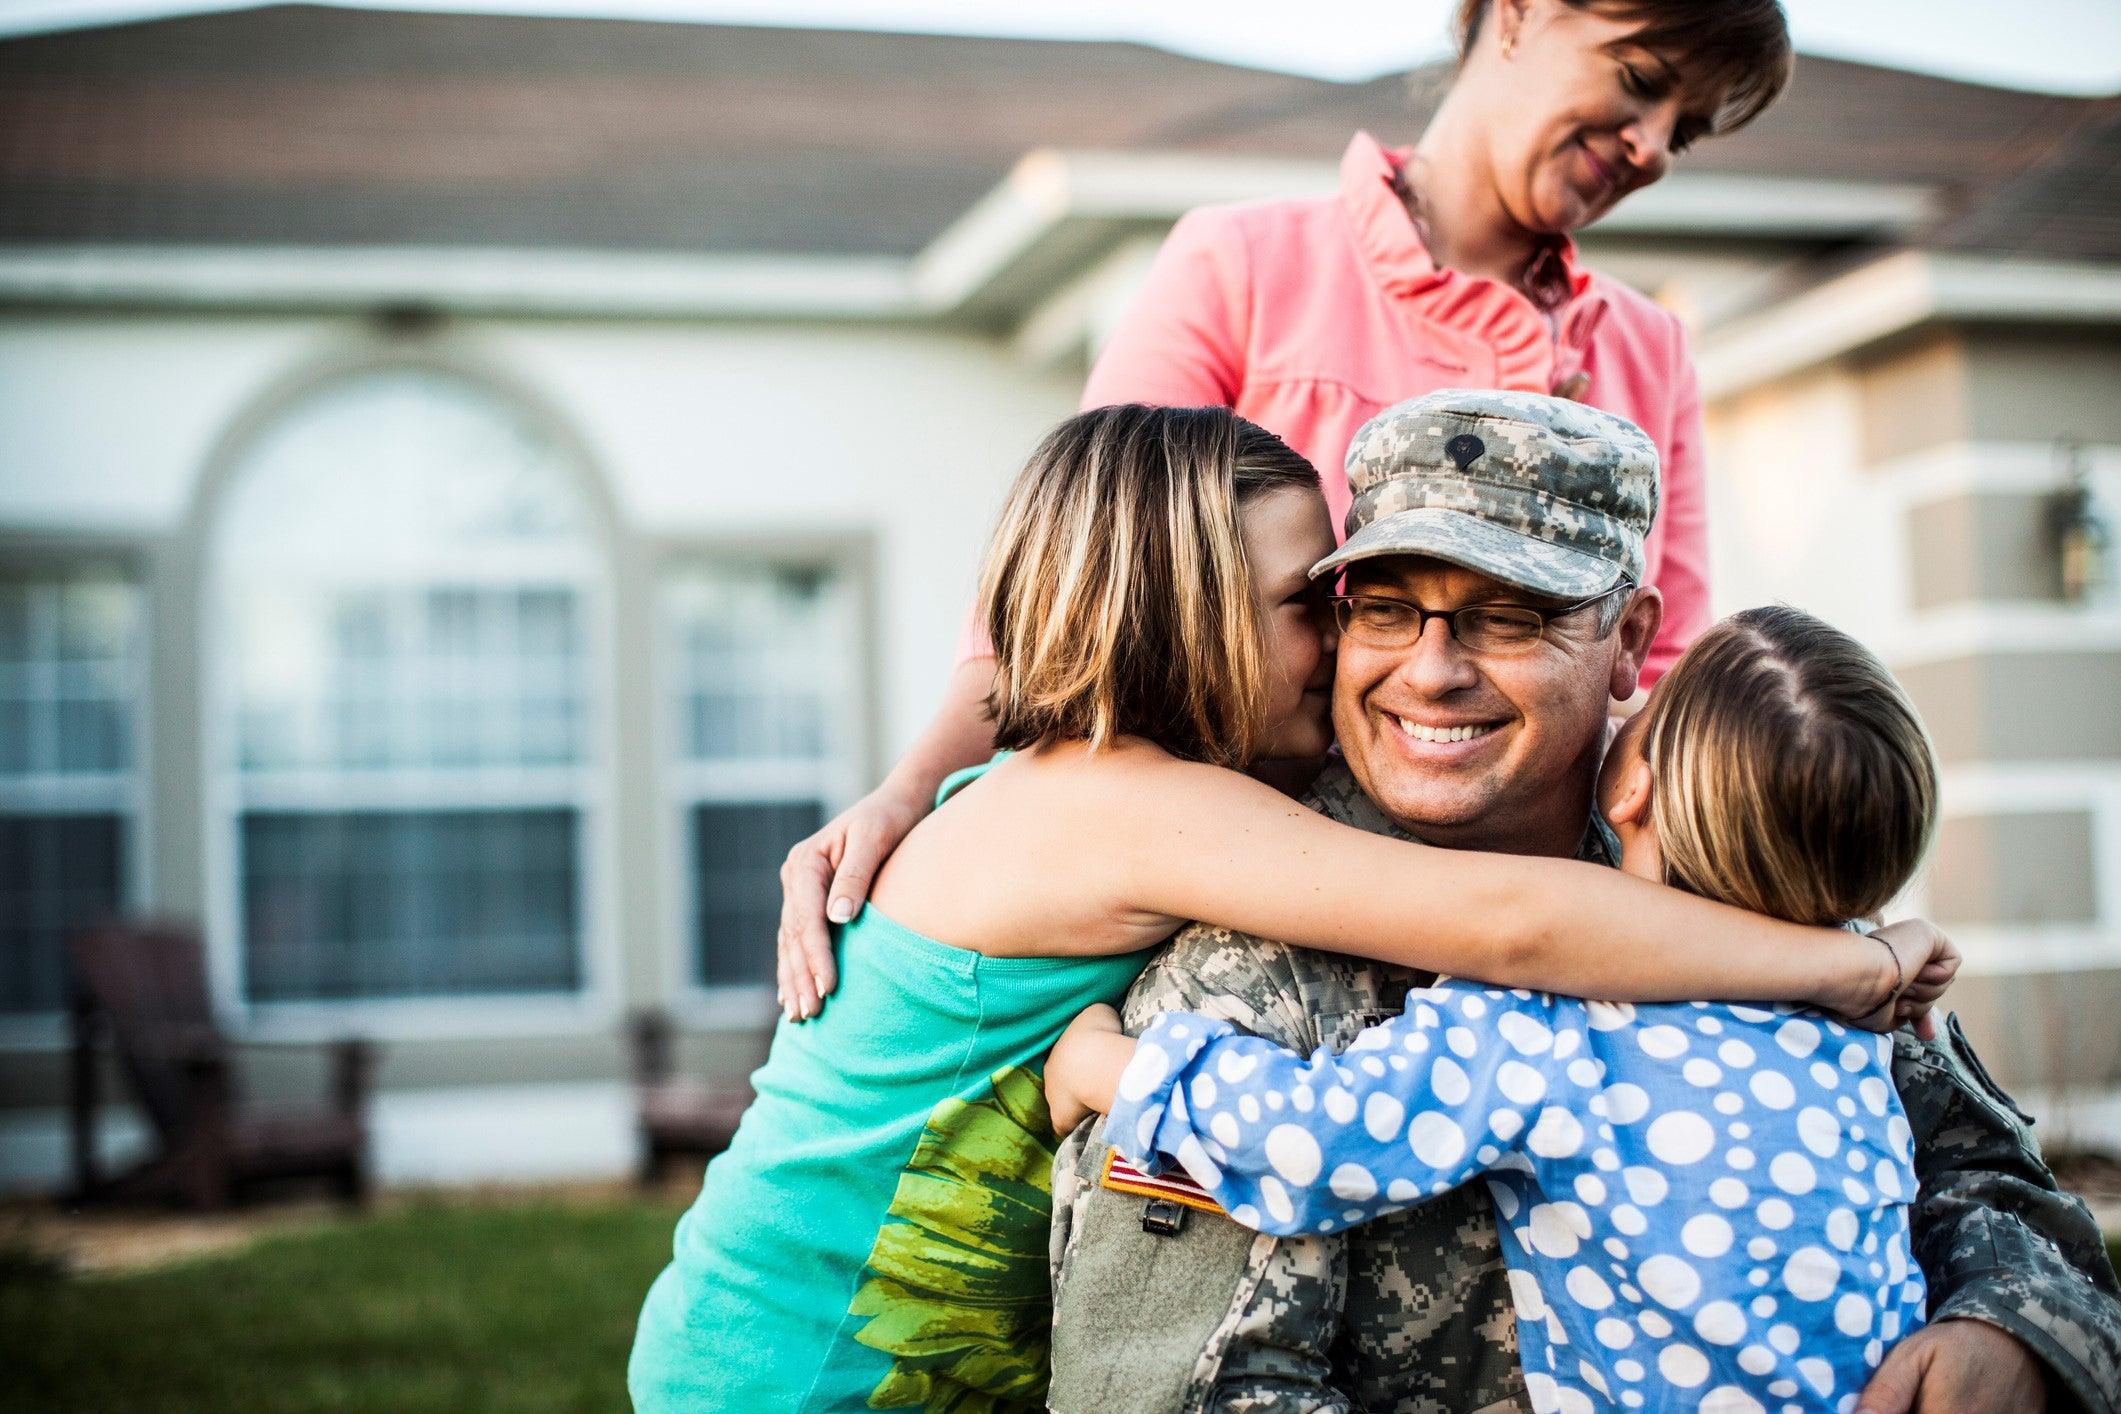 Home Security Discounts for Veterans